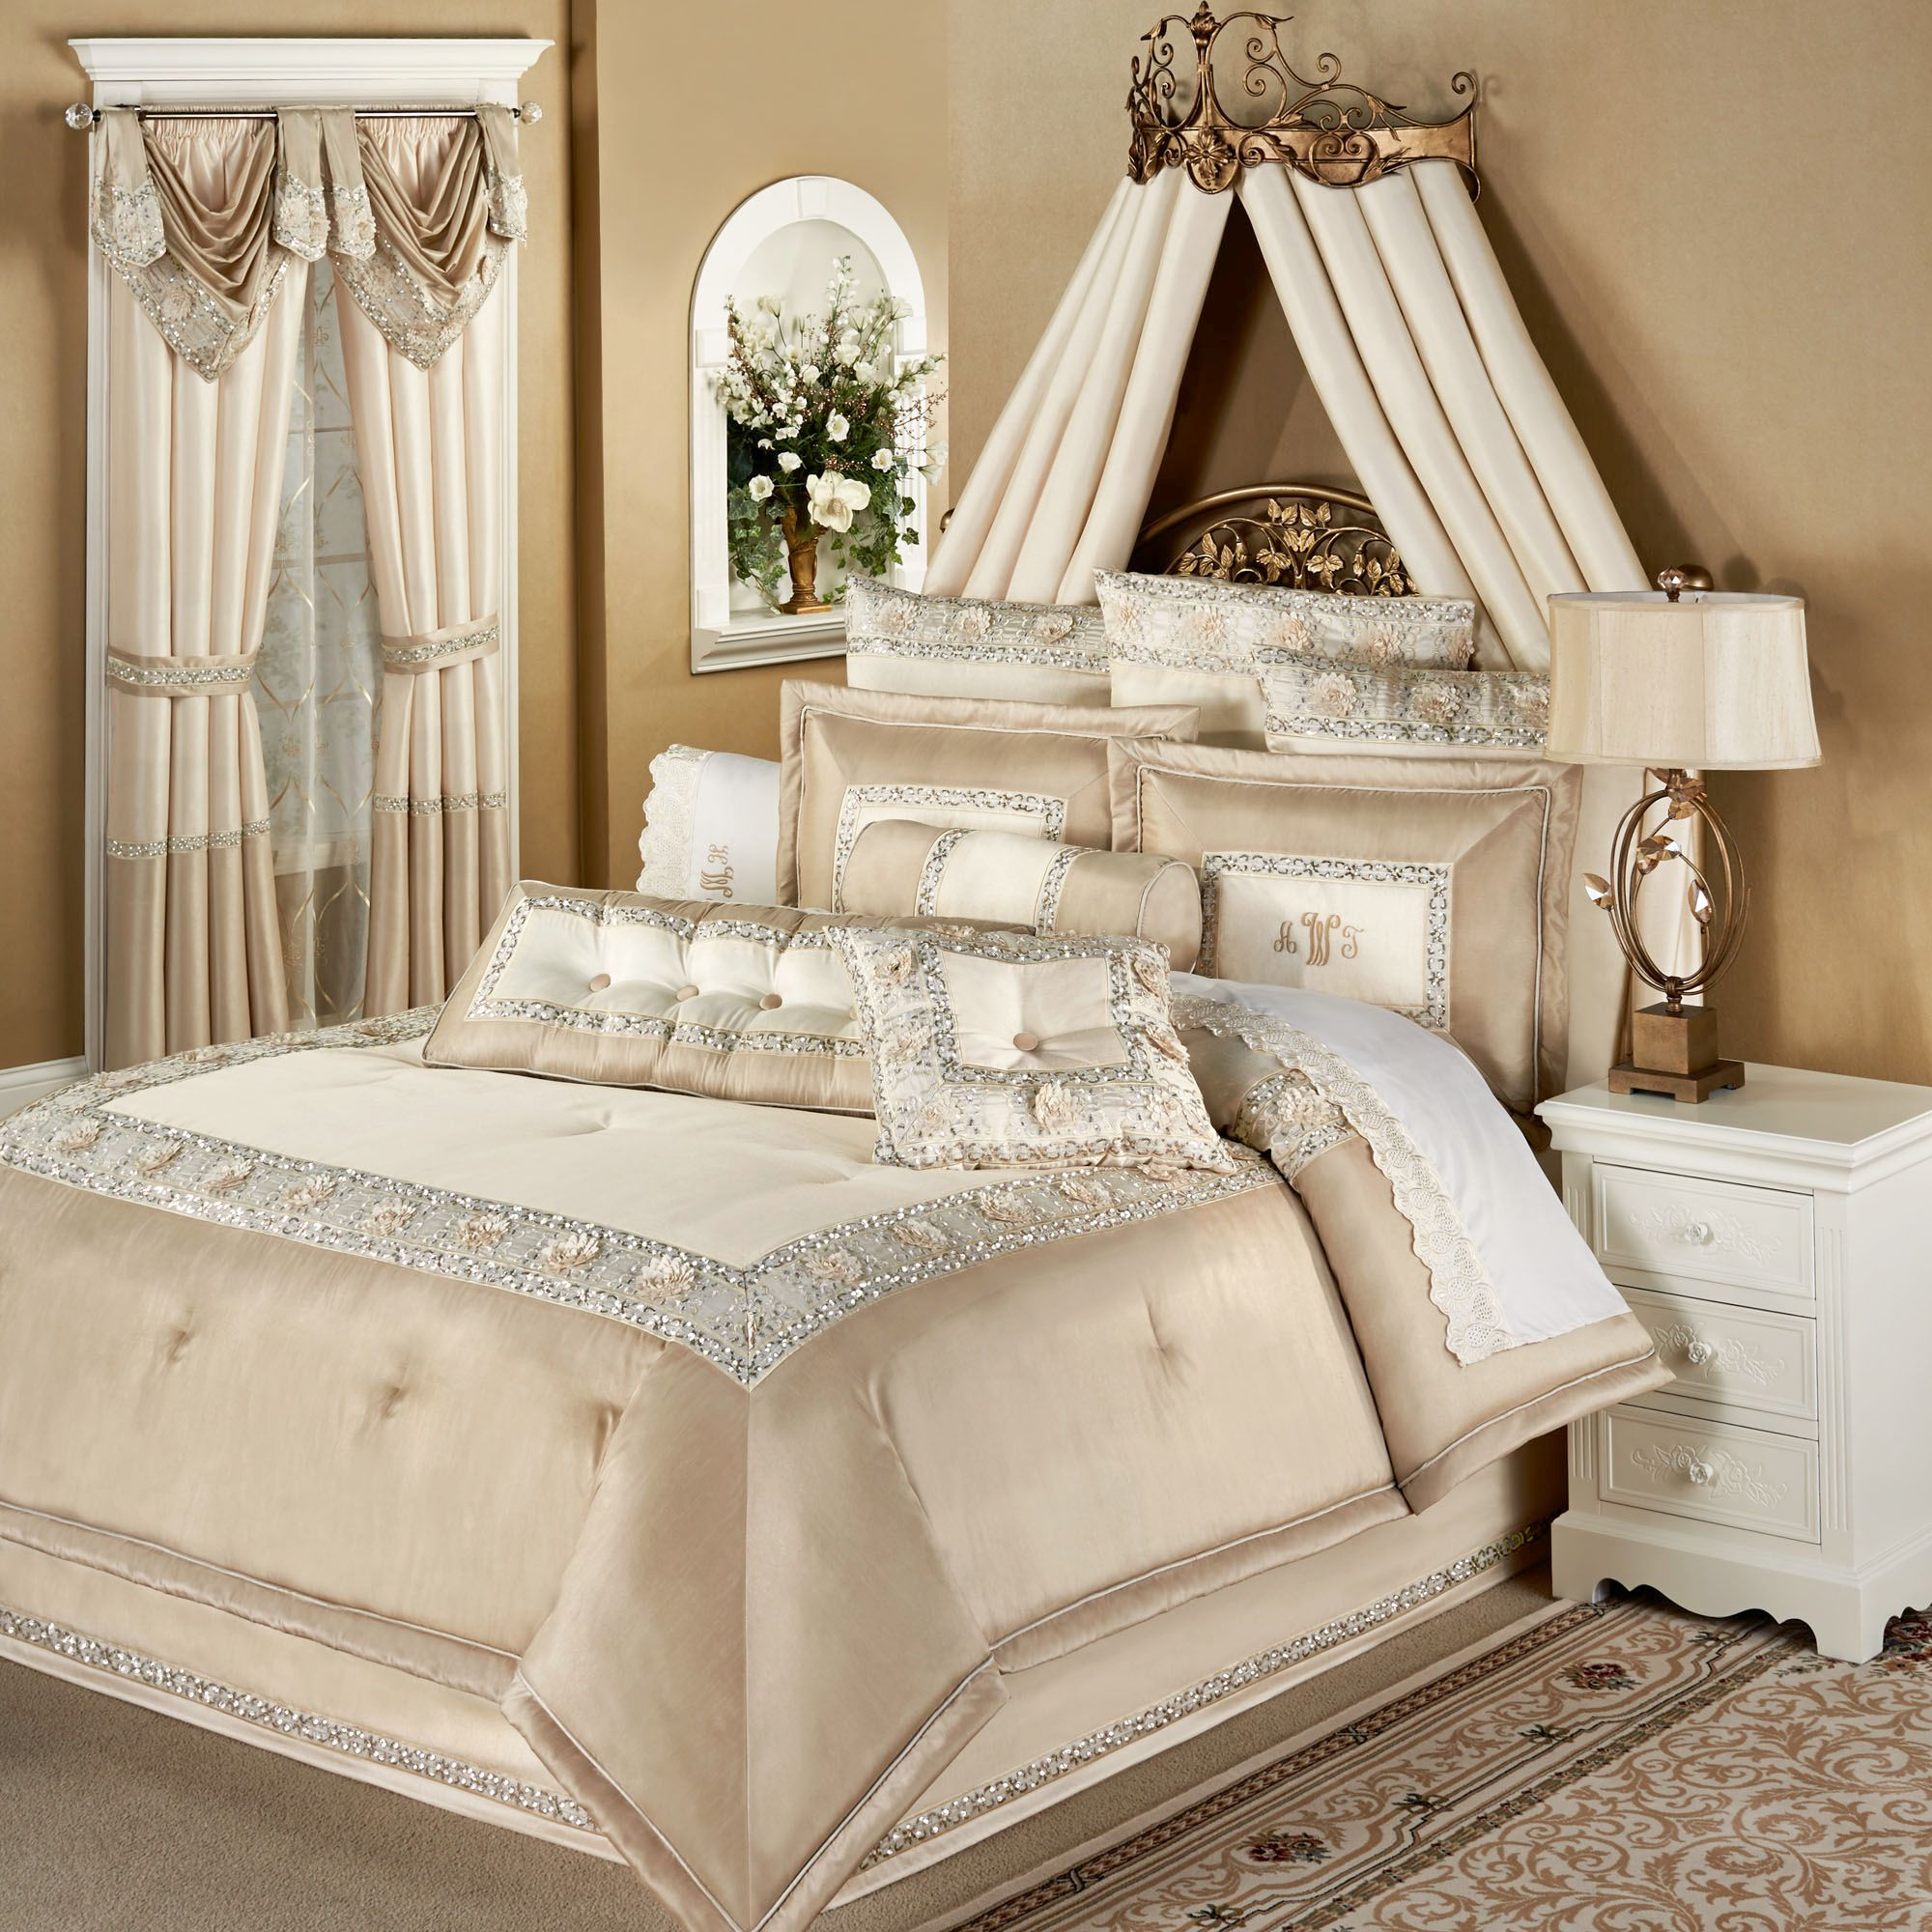 Elegante Faux Silk Luxury Comforter Bedding | Smörgåsbord of ...